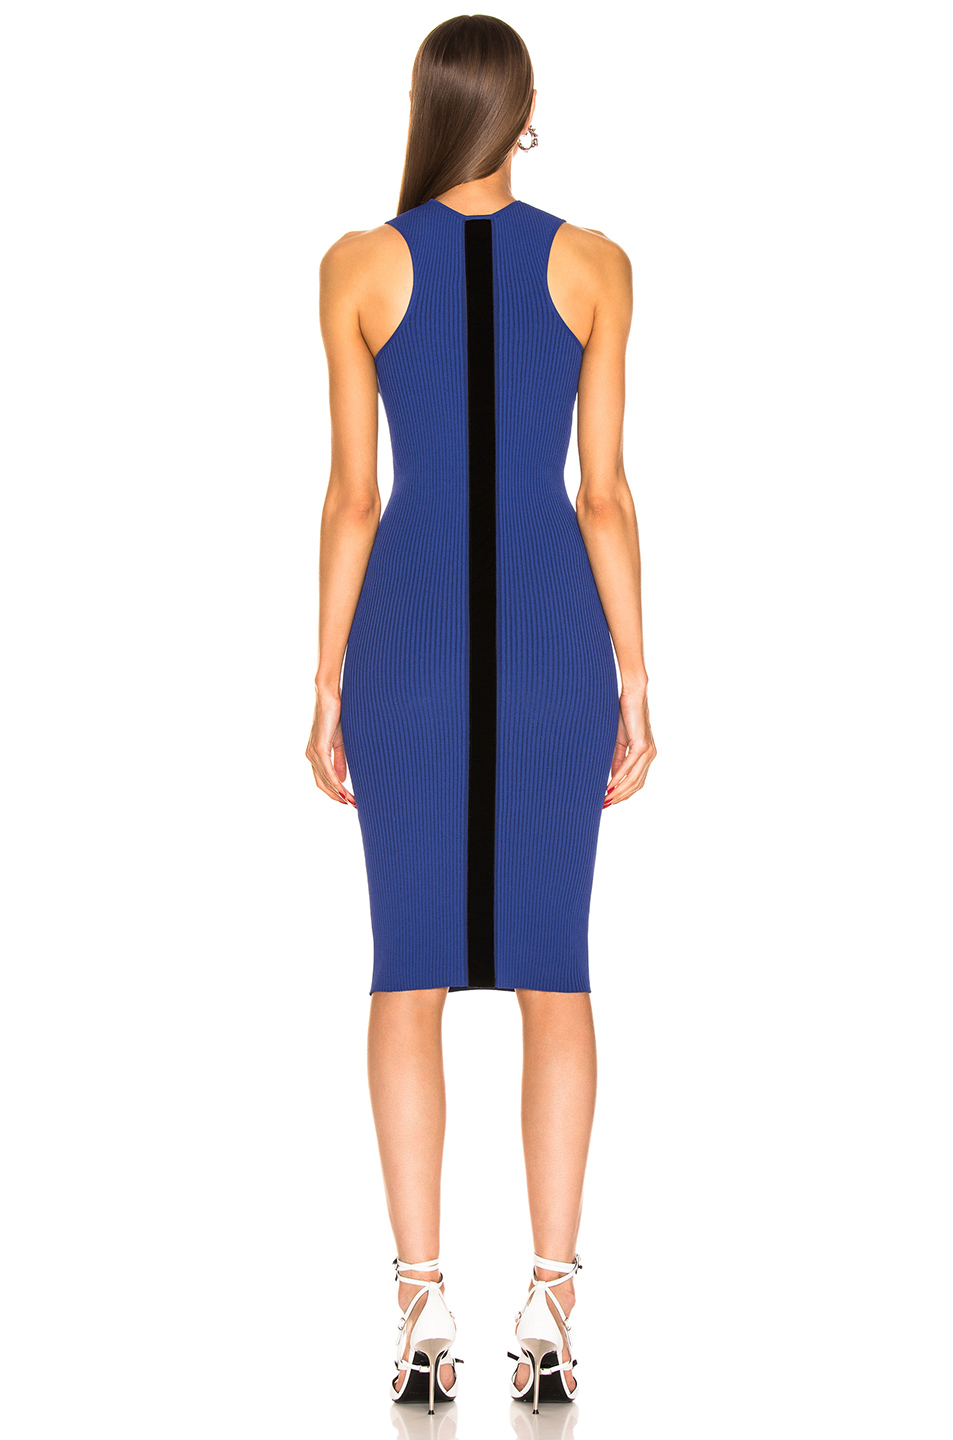 Haider Ackermann Knit Dress